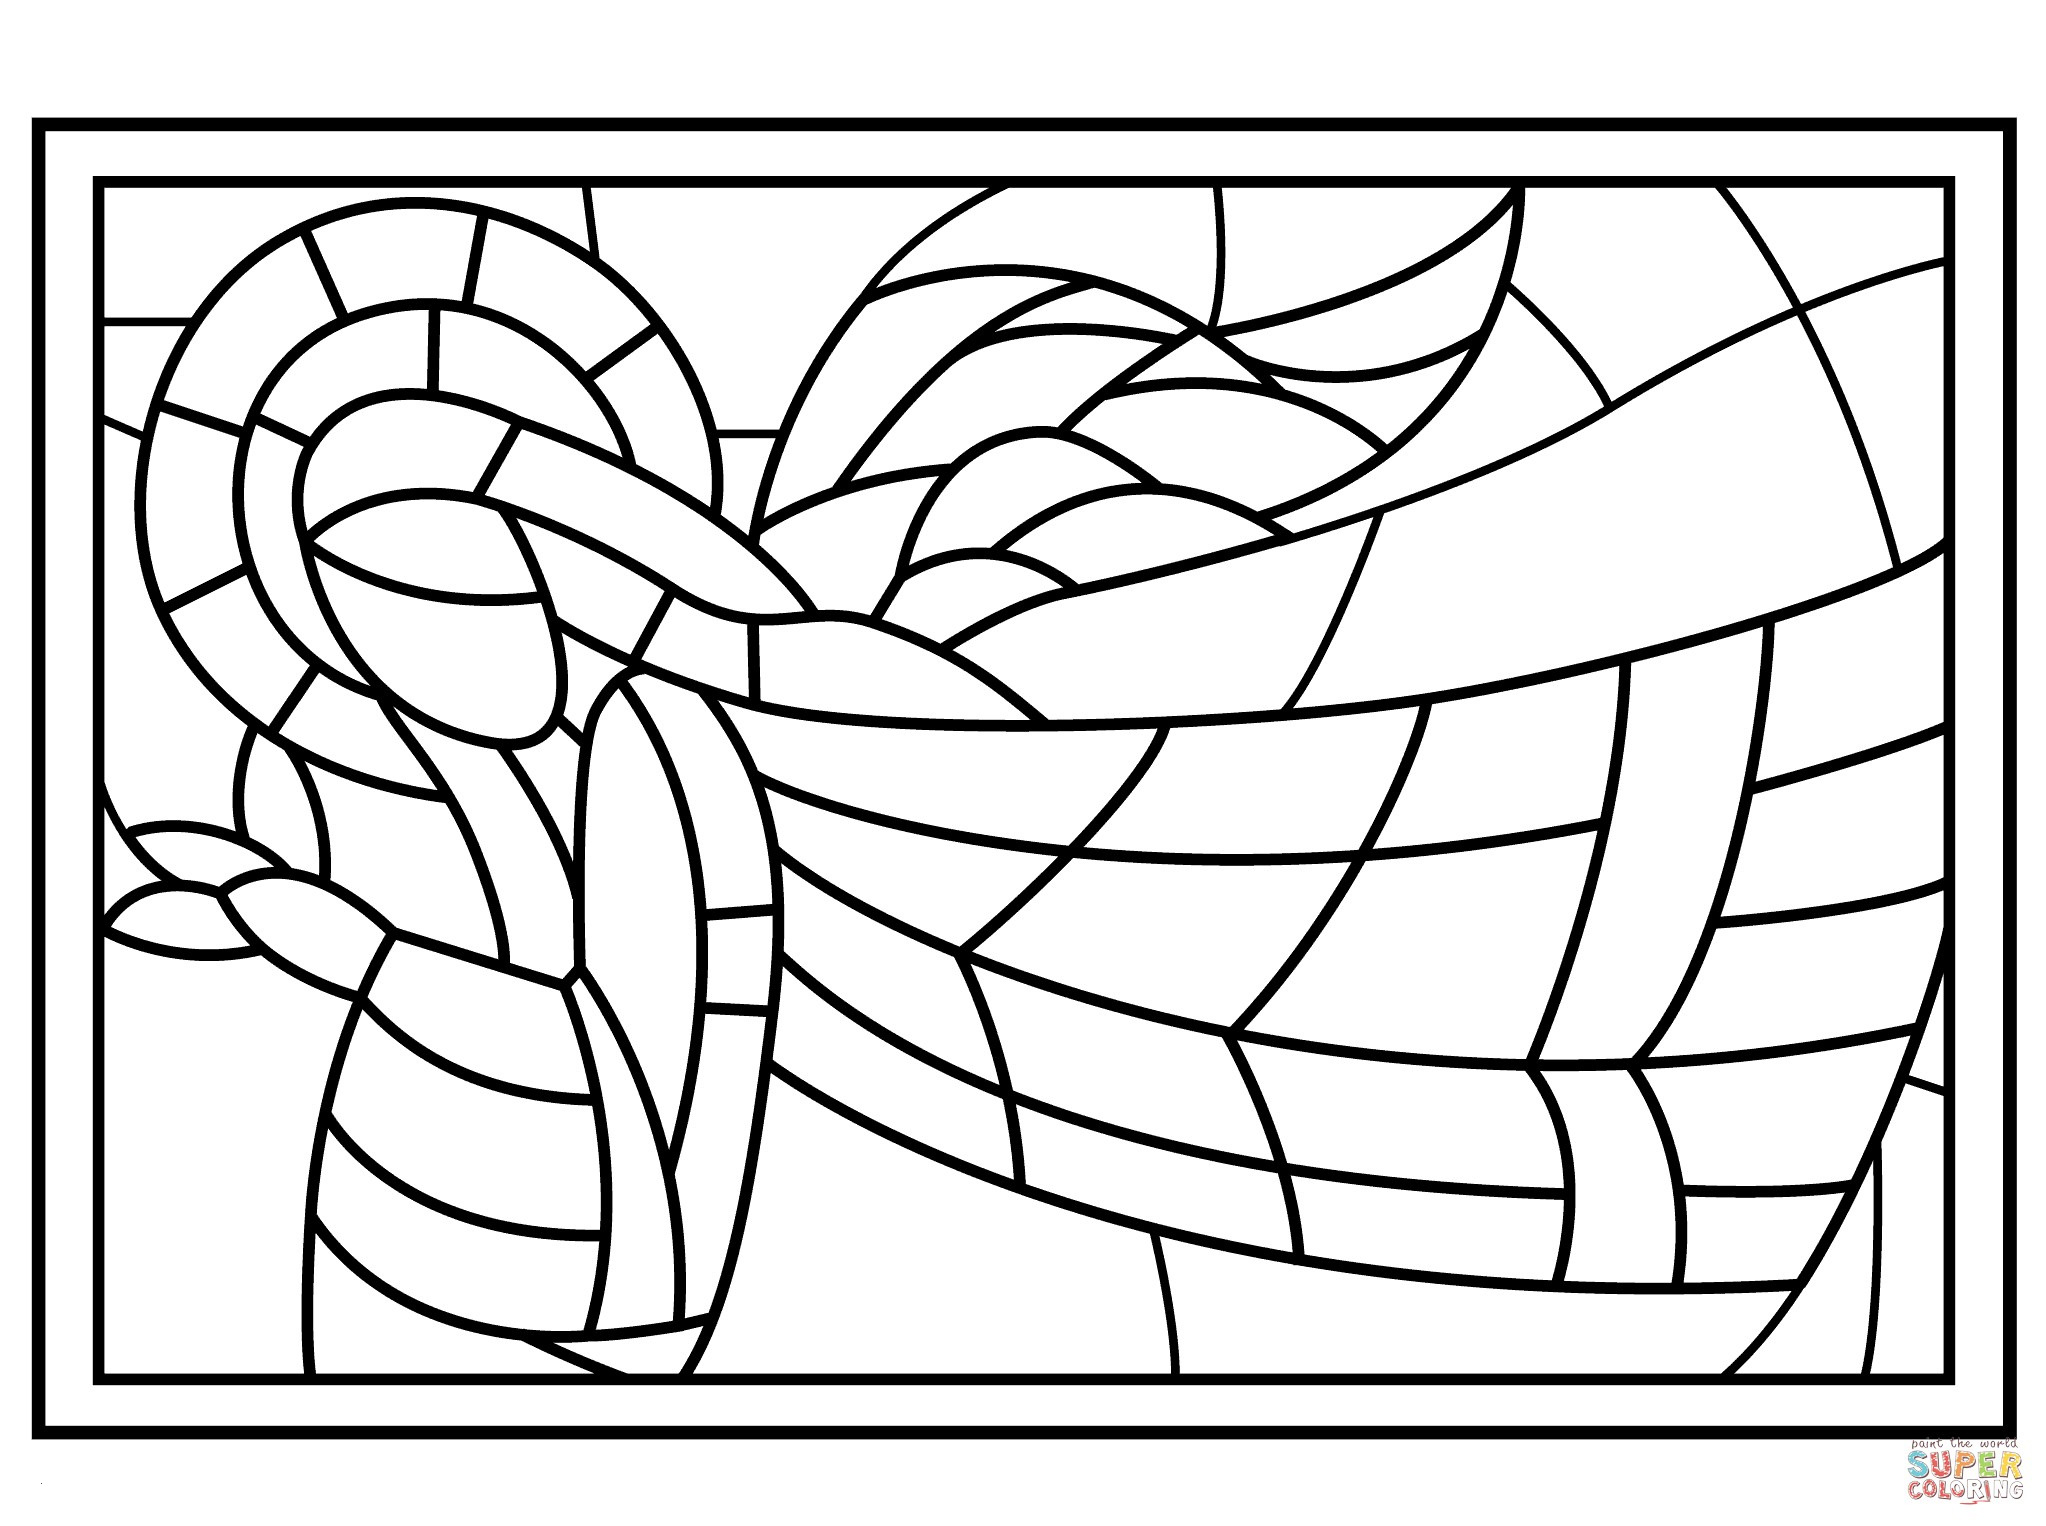 Baptism Coloring Pages Printables  Collection 11g - Save it to your computer